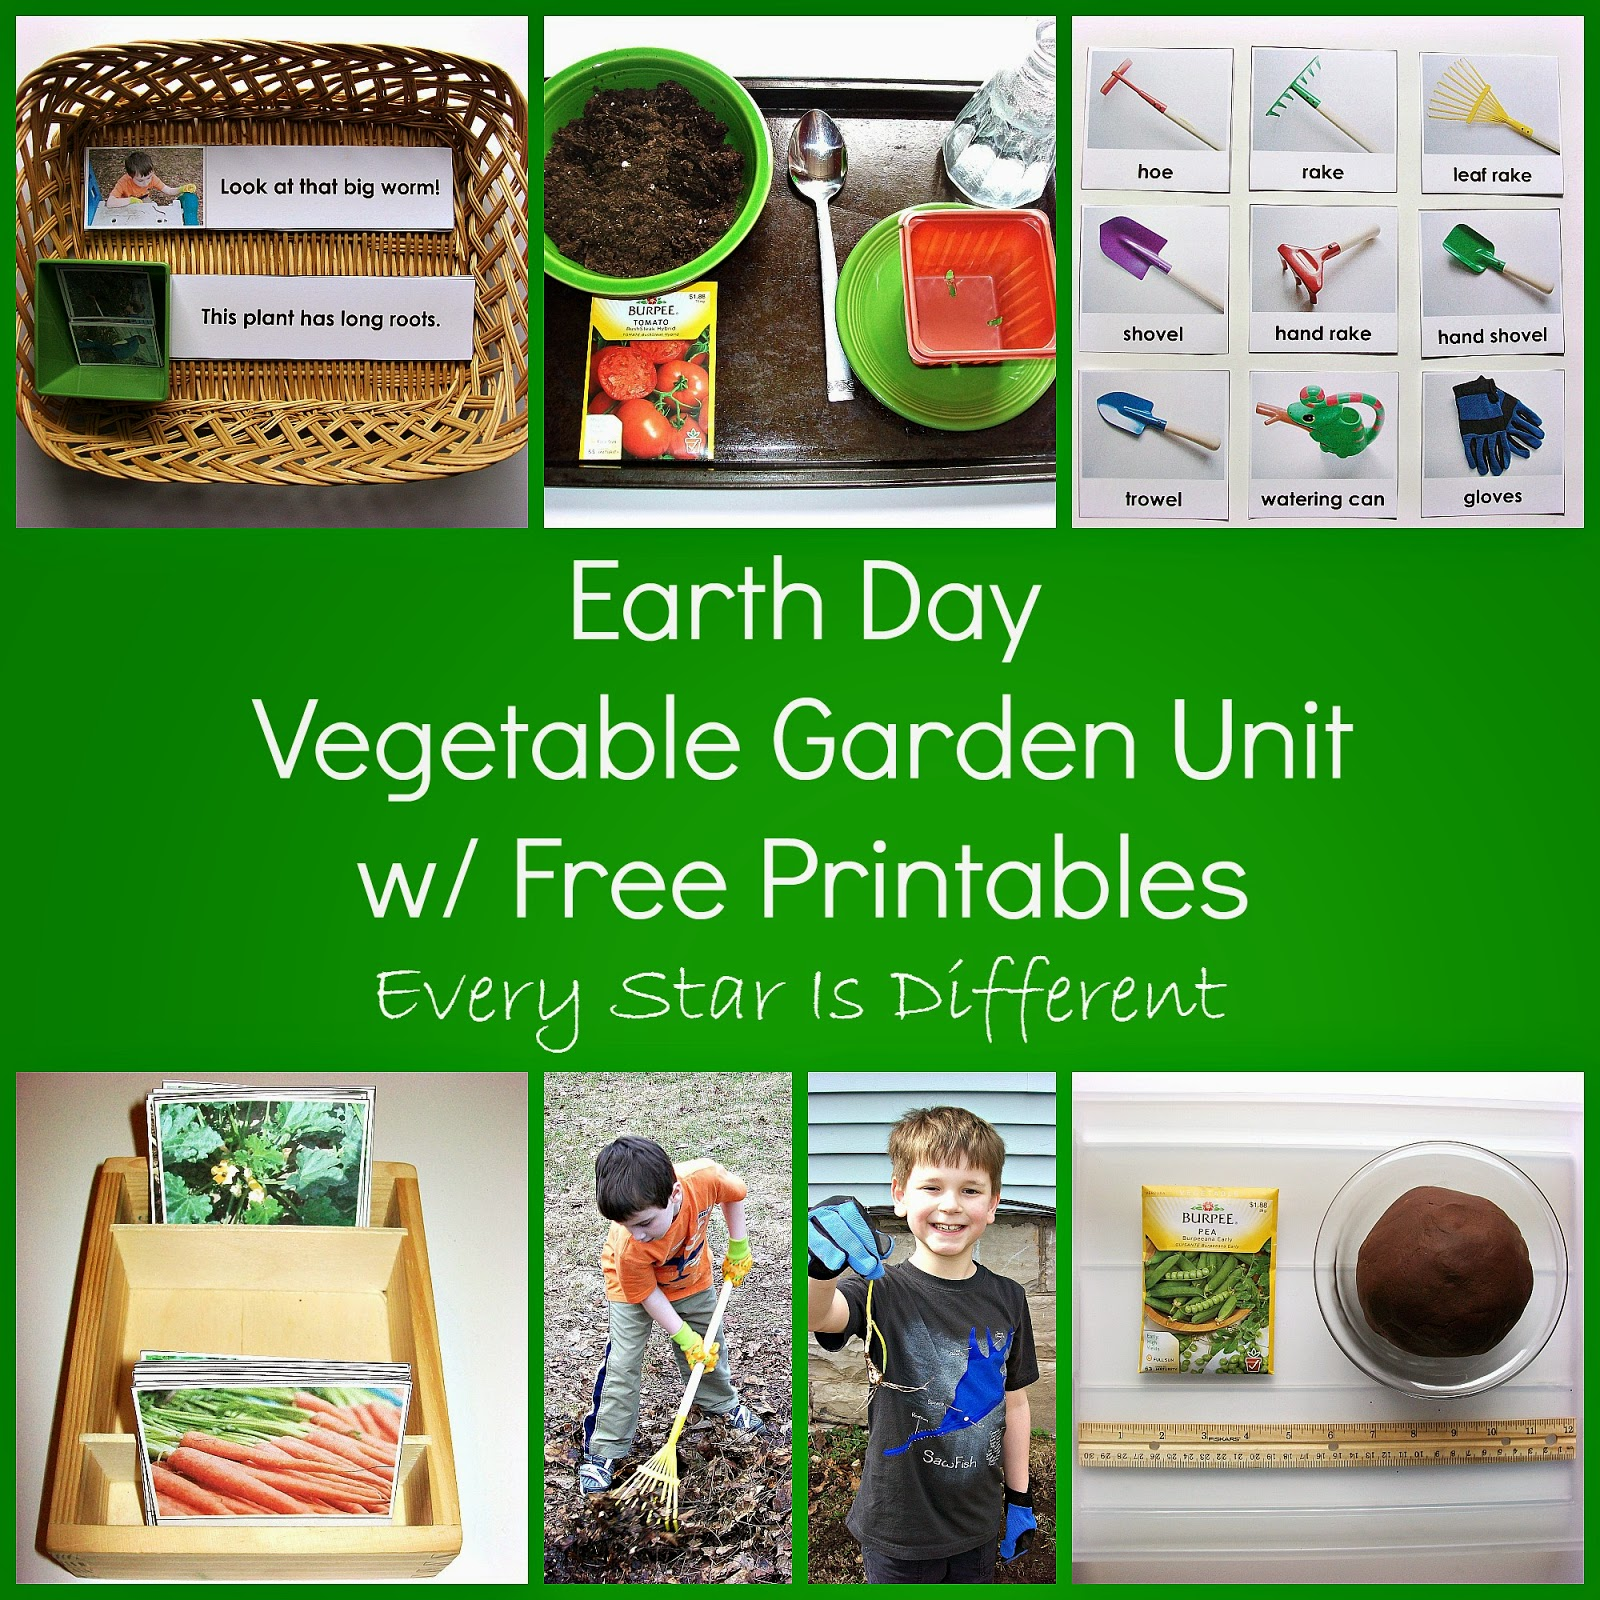 Vegetable Garden Unit